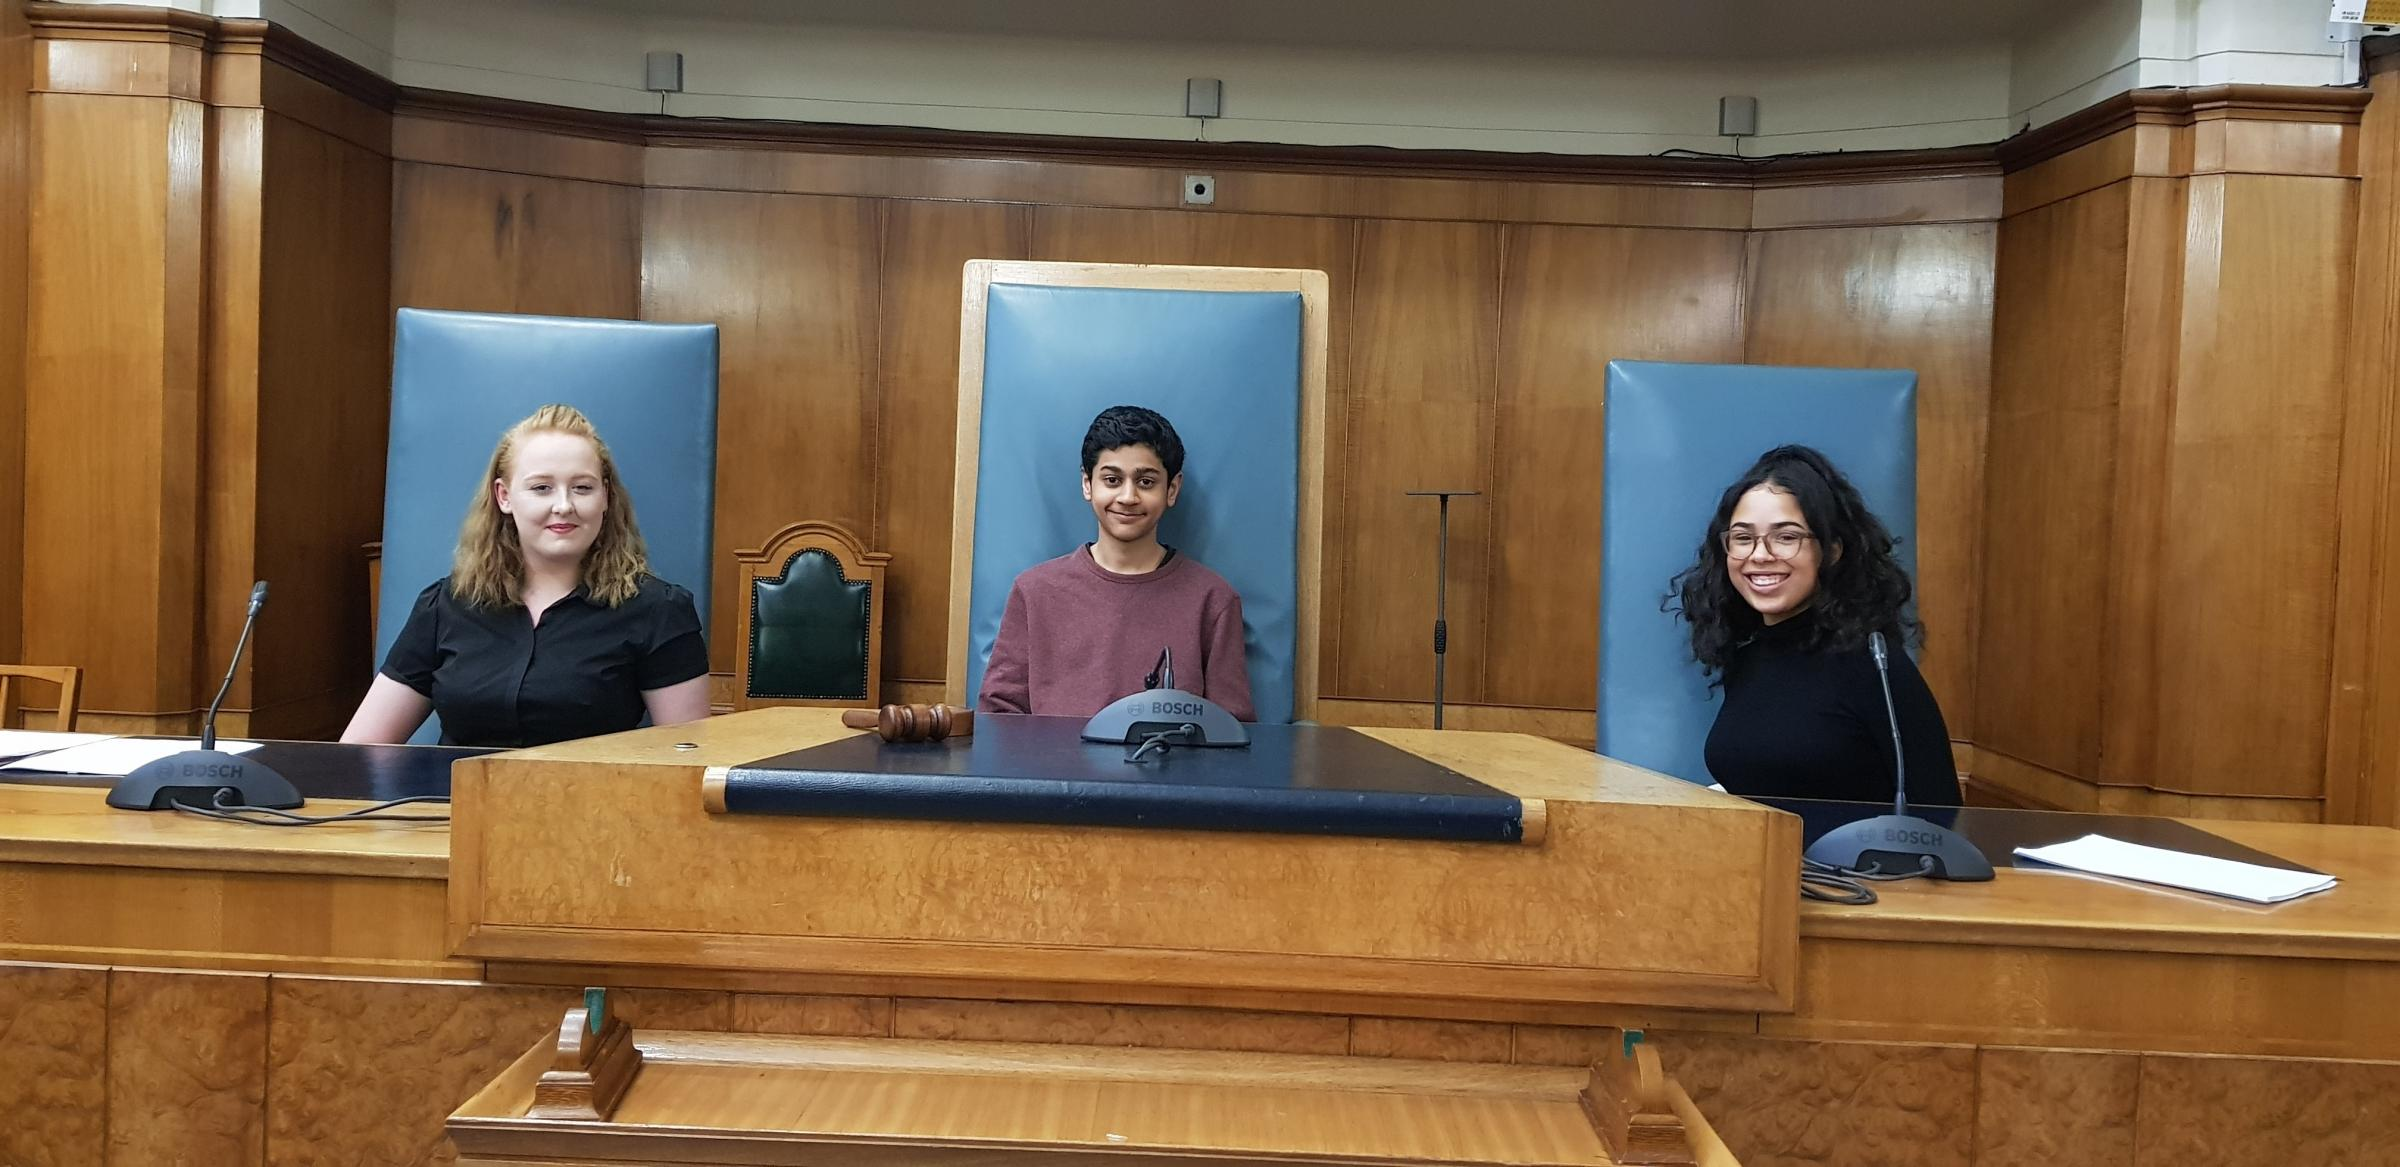 CABINET: From left, Bury's deputy member of youth parliament, Bethanie Mortenson, Bury Member of Youth Parliament Numair Khalid and Deputy Member of Youth Parliament Viktoria Ouomble